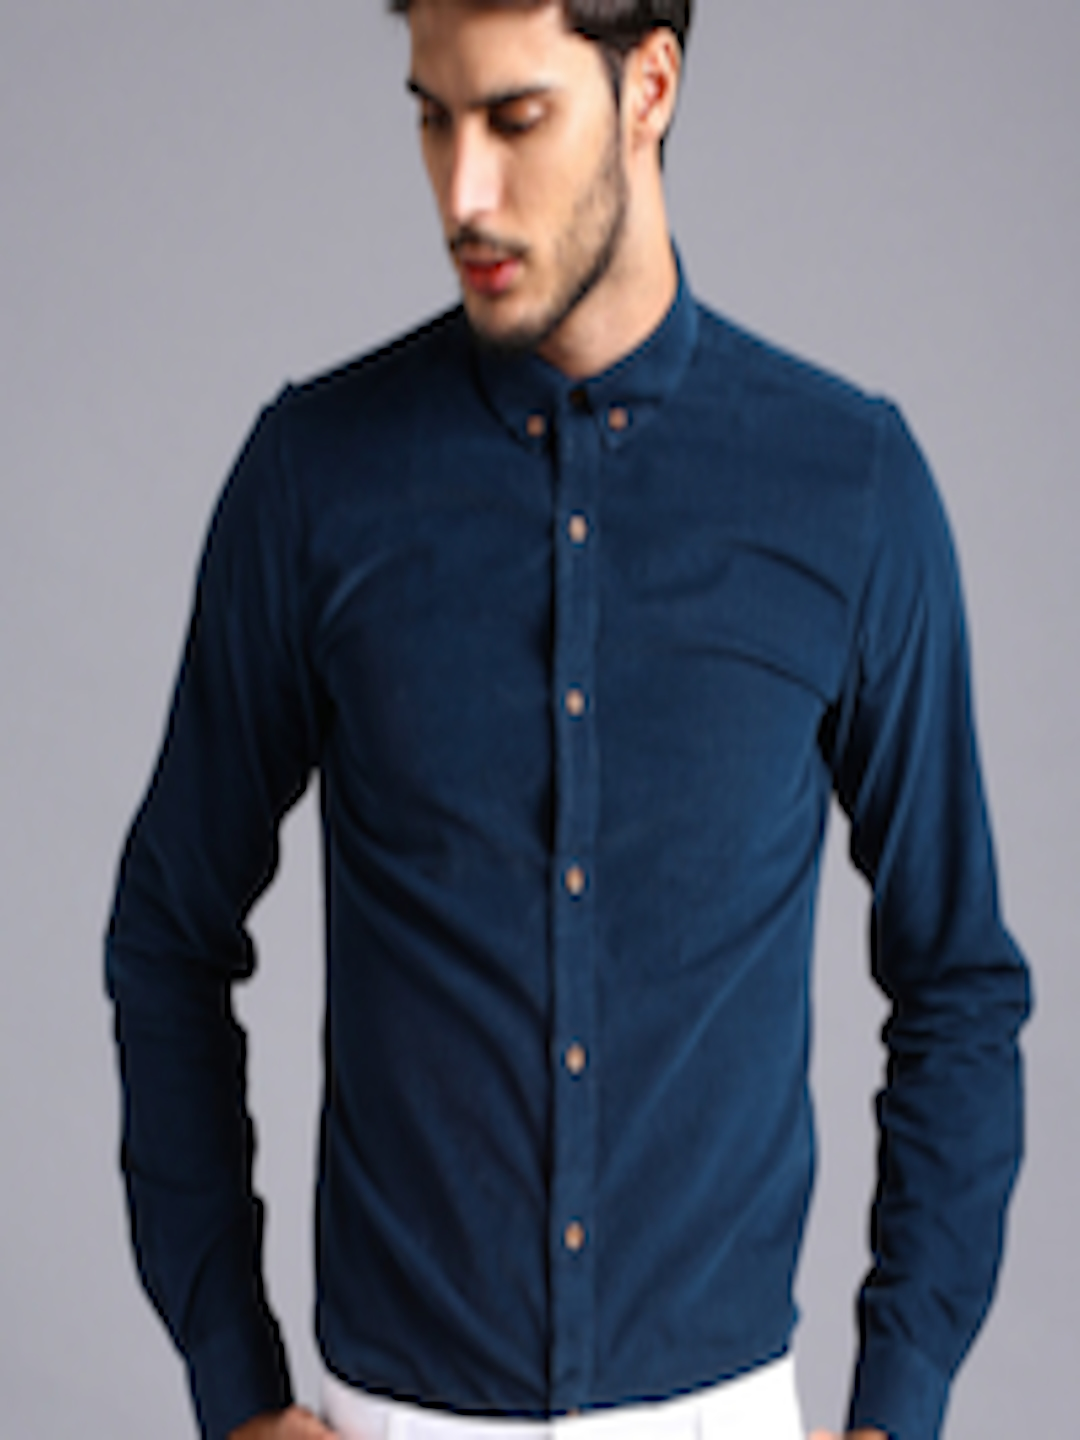 15015c93b5 Buy Ether Men Navy Blue Slim Fit Antimicrobial Corduroy Shirt ...